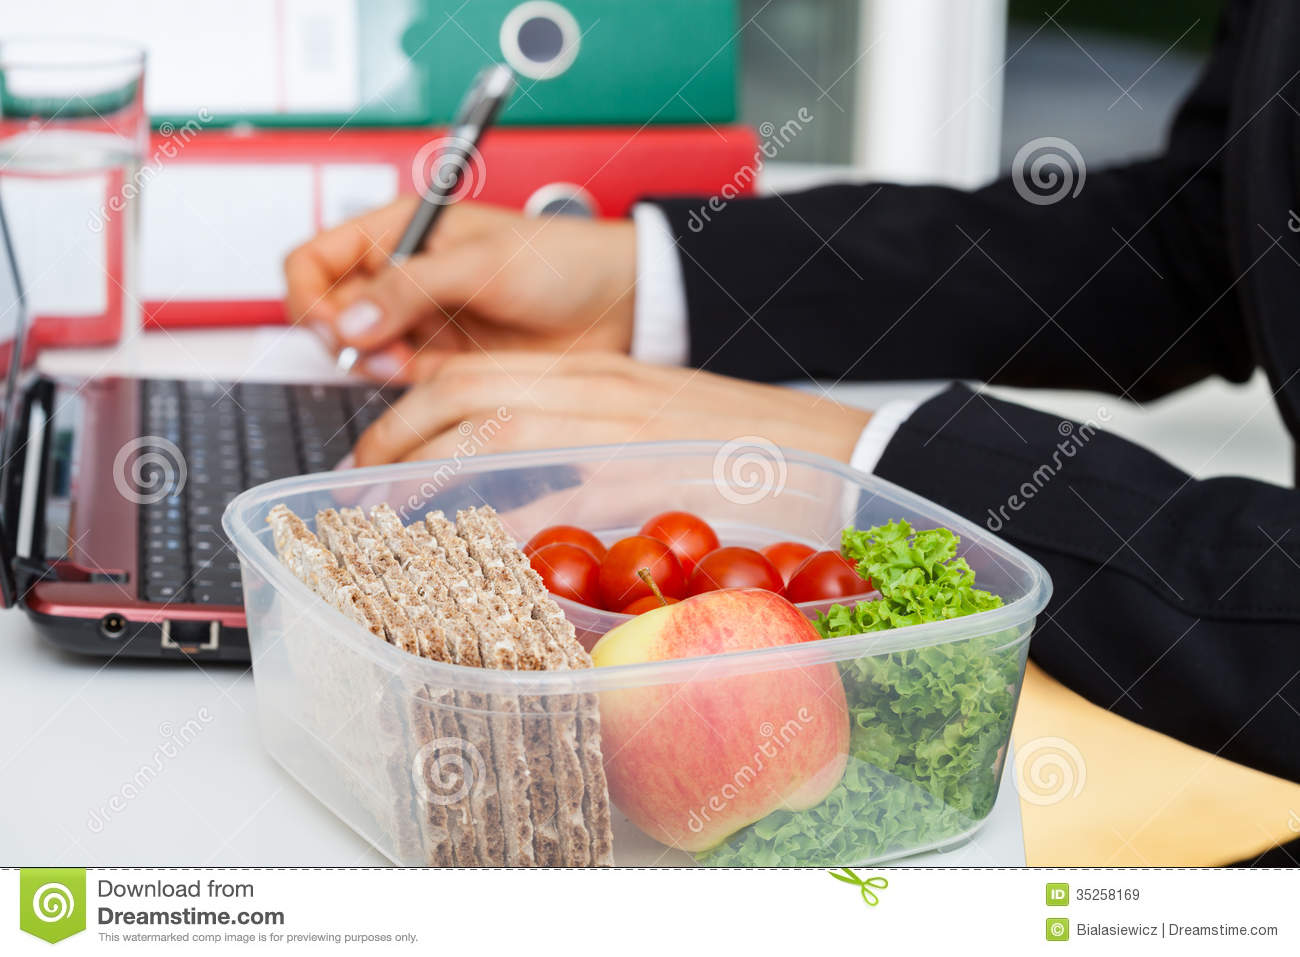 lunchbox at work stock image image of service breakfast 35258169. Black Bedroom Furniture Sets. Home Design Ideas